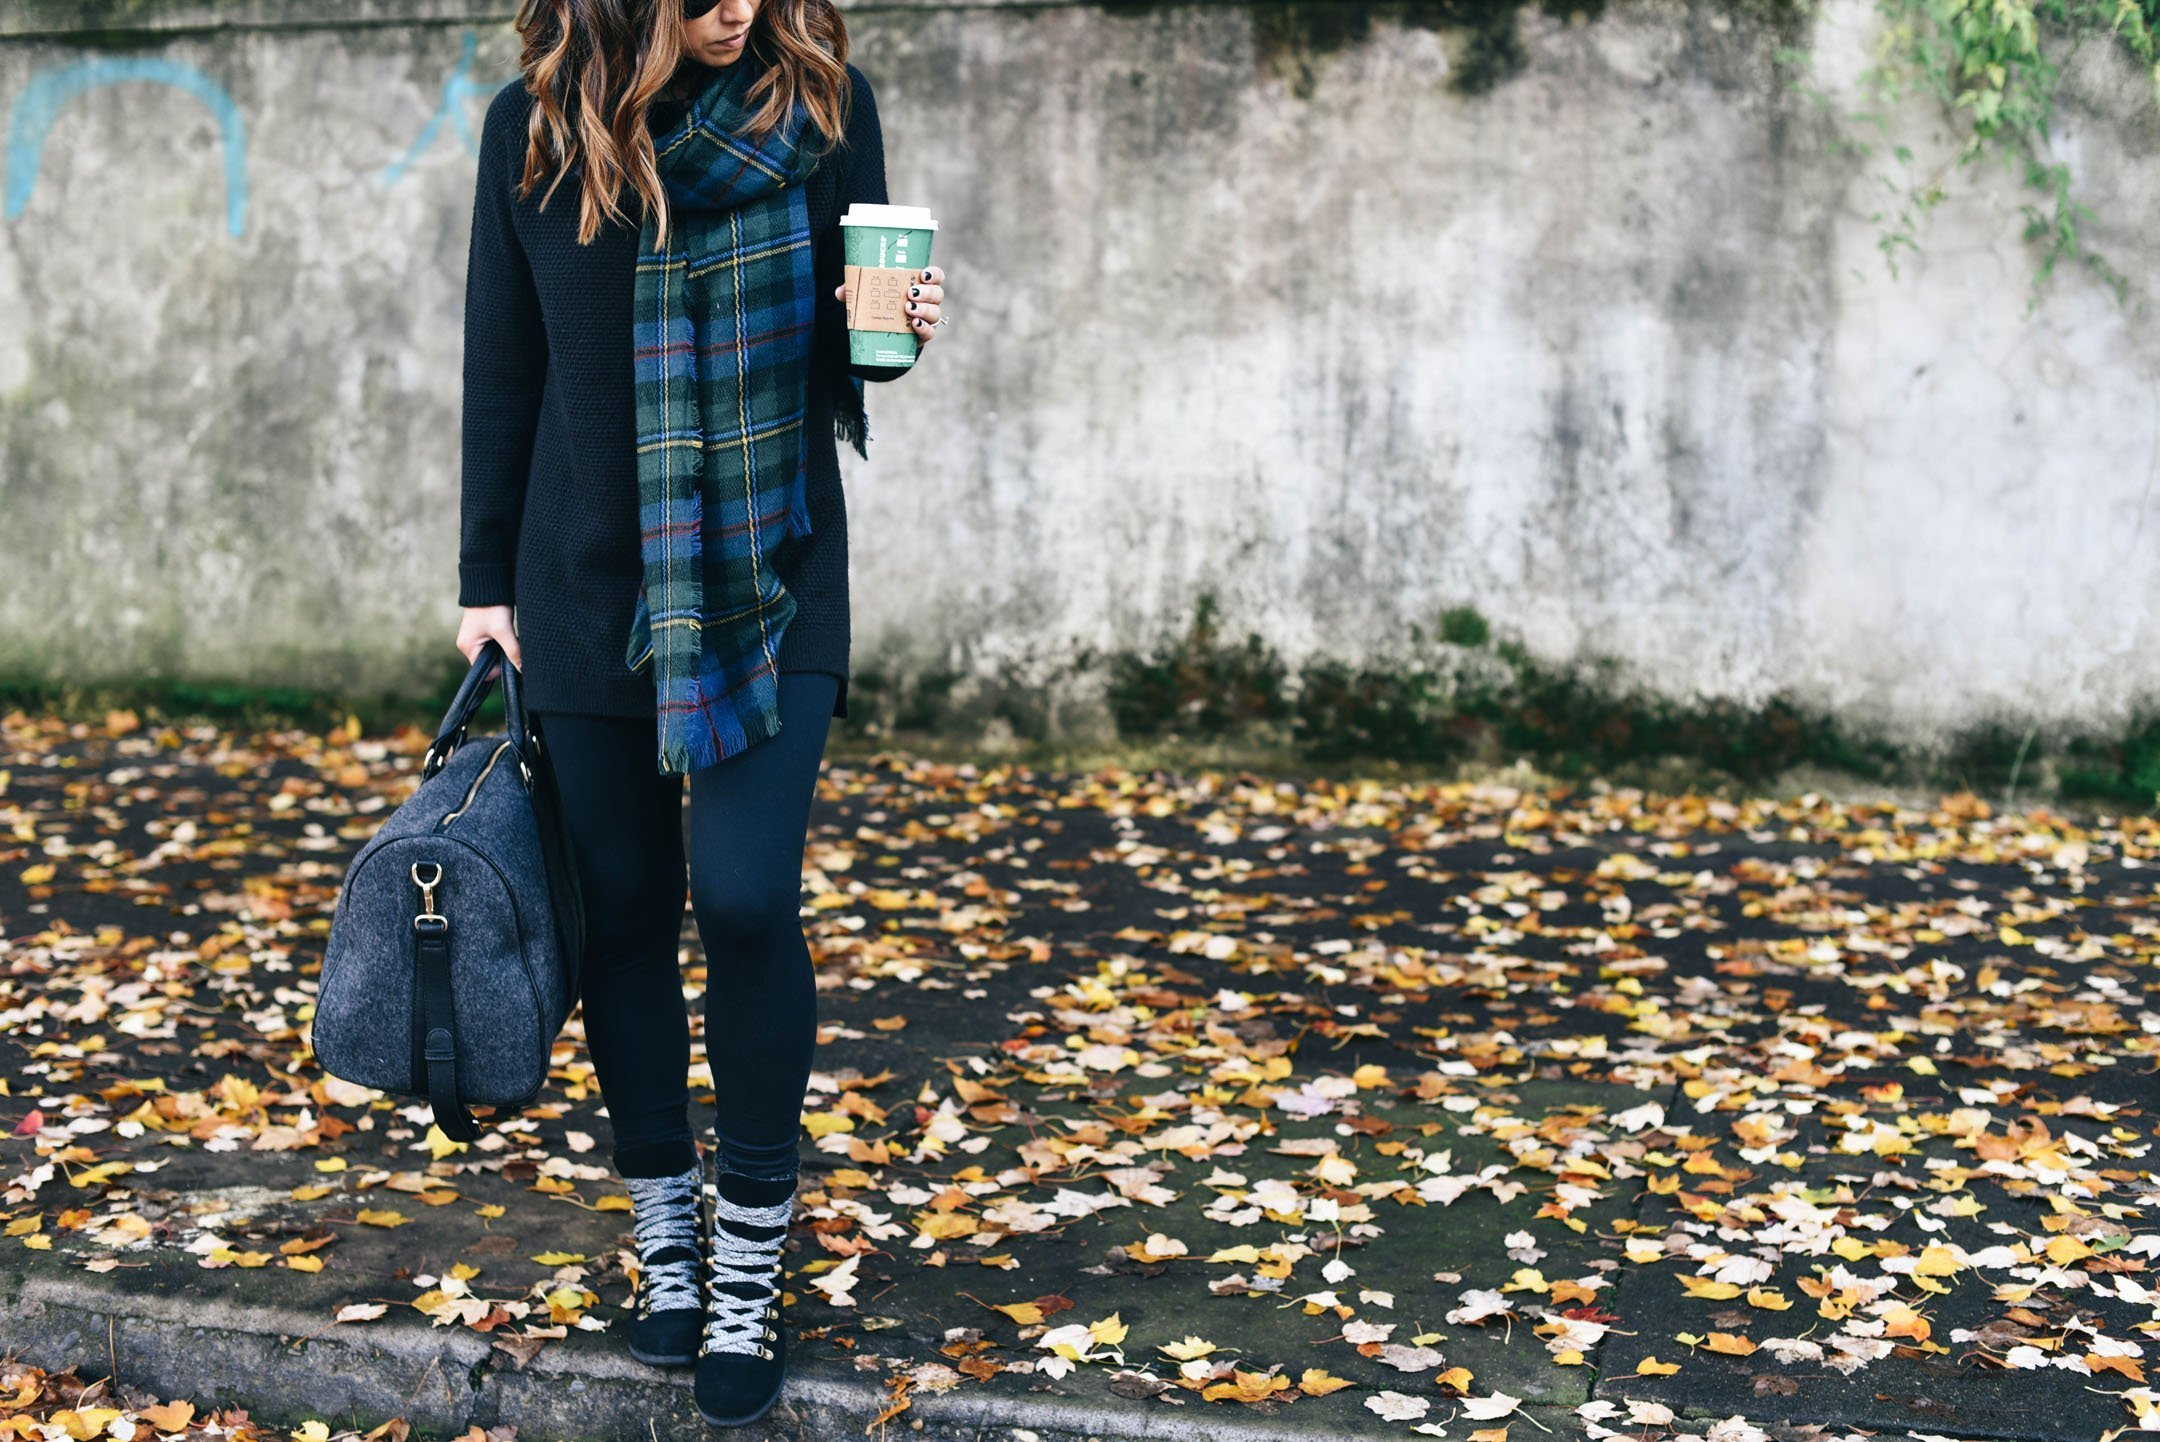 crystalin-marie-wearing-sole-society-plaid-green-scarf